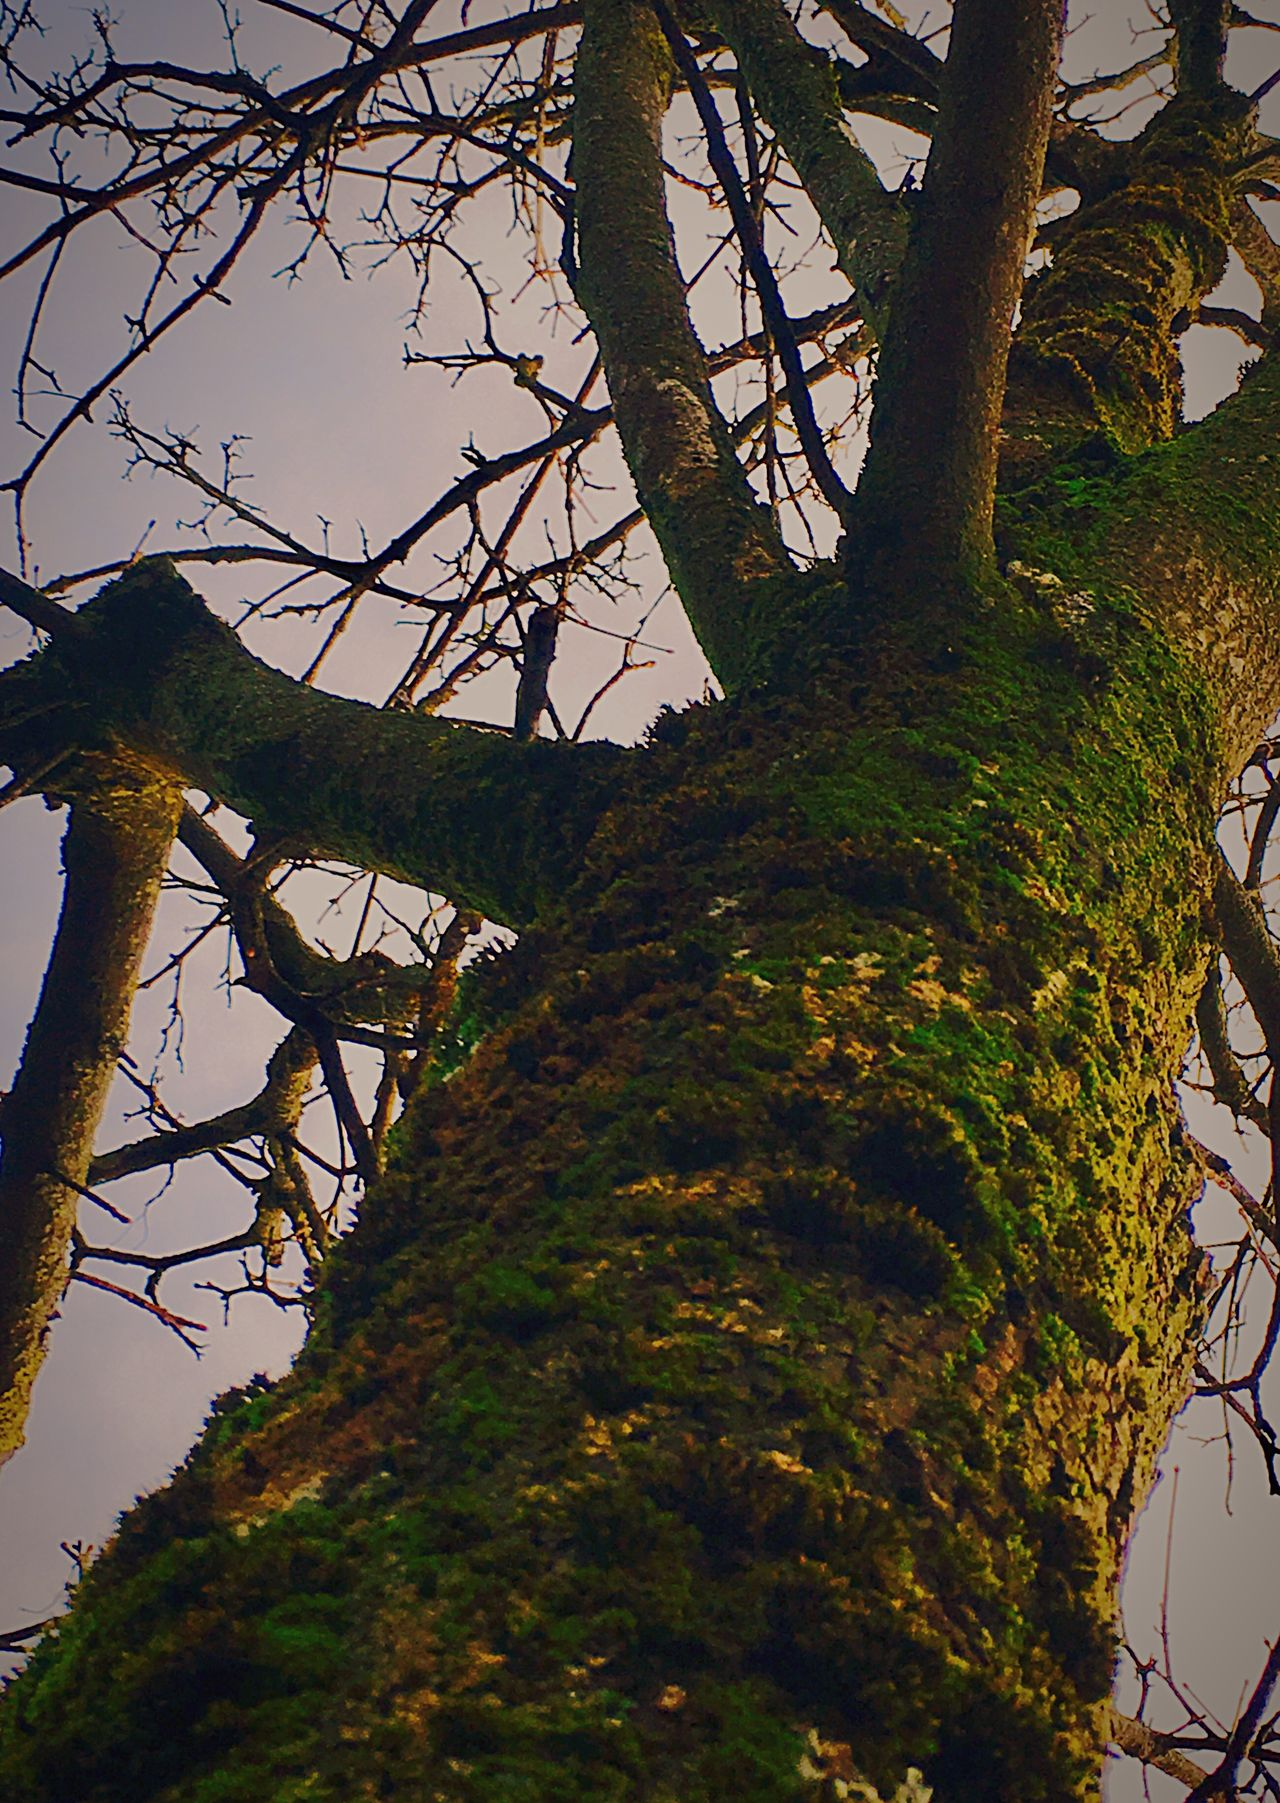 'Mr.Treesap' Beauty In Nature Branch Tranquility Sky Growth Outdoors Bare Tree No People Landscape Day Scenics Beautiful Day Urbexphotography Quickshots Urban Tree Oslo, Norway Winter2016 ❄ Winter Has Come Cloud - Sky Low Angle View Mossy Tree Nature URBd Nature KariJosefiné✨